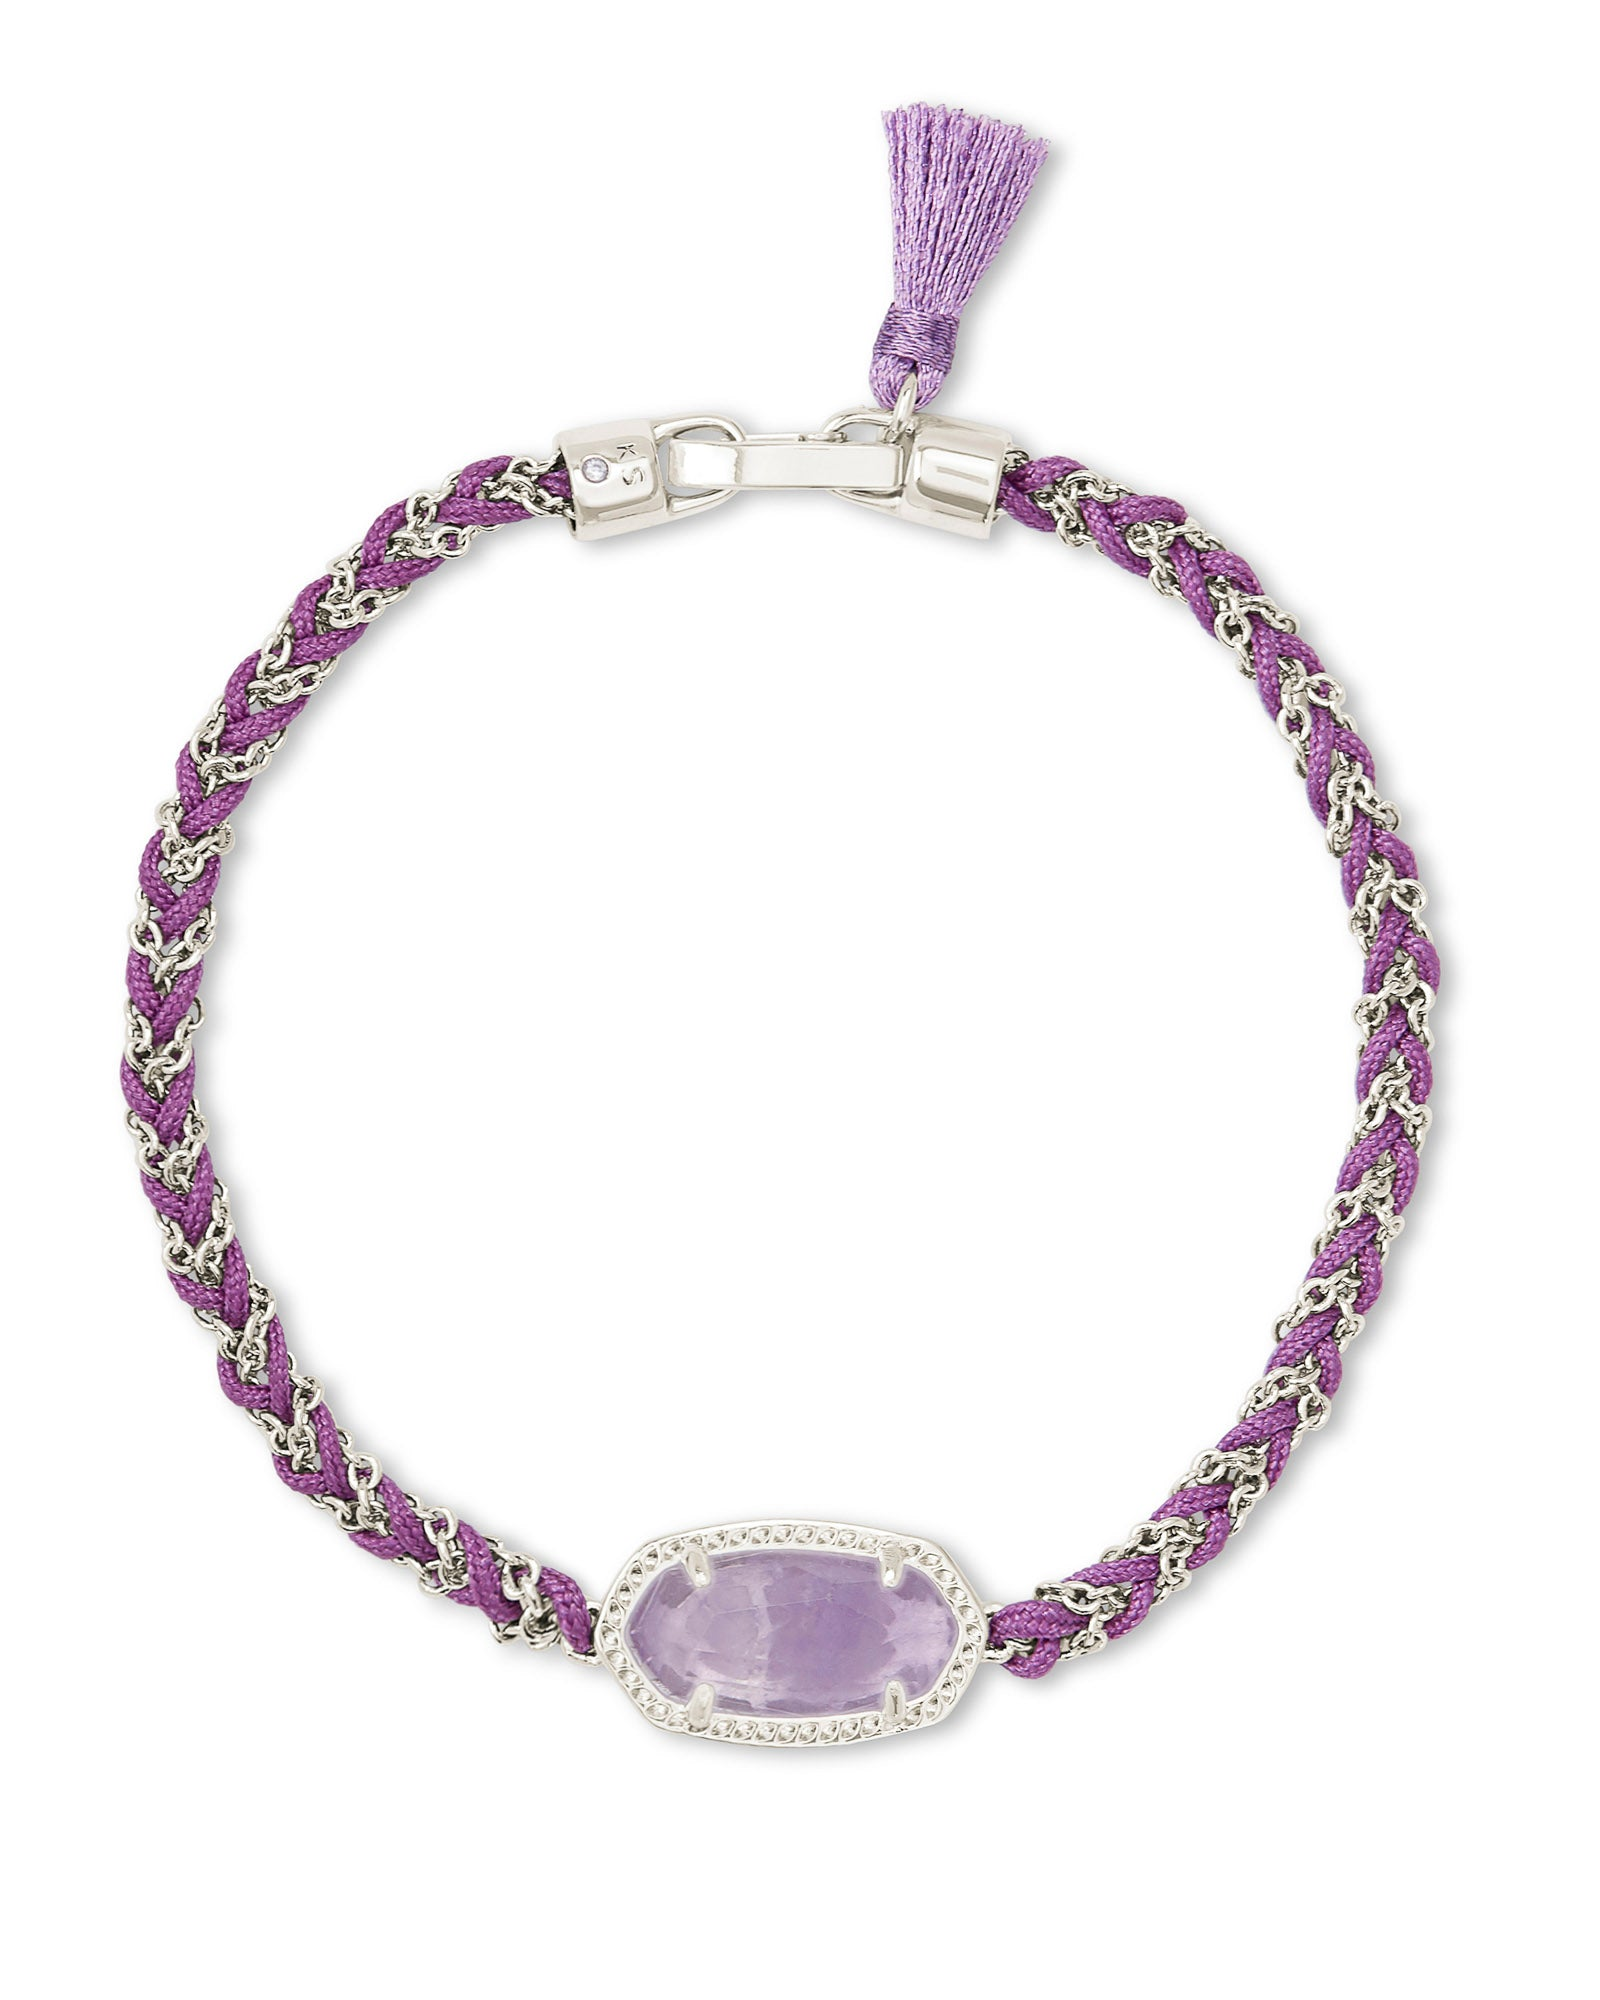 Elaina Braided Friendship Bracelet in Silver Purple Amethyst